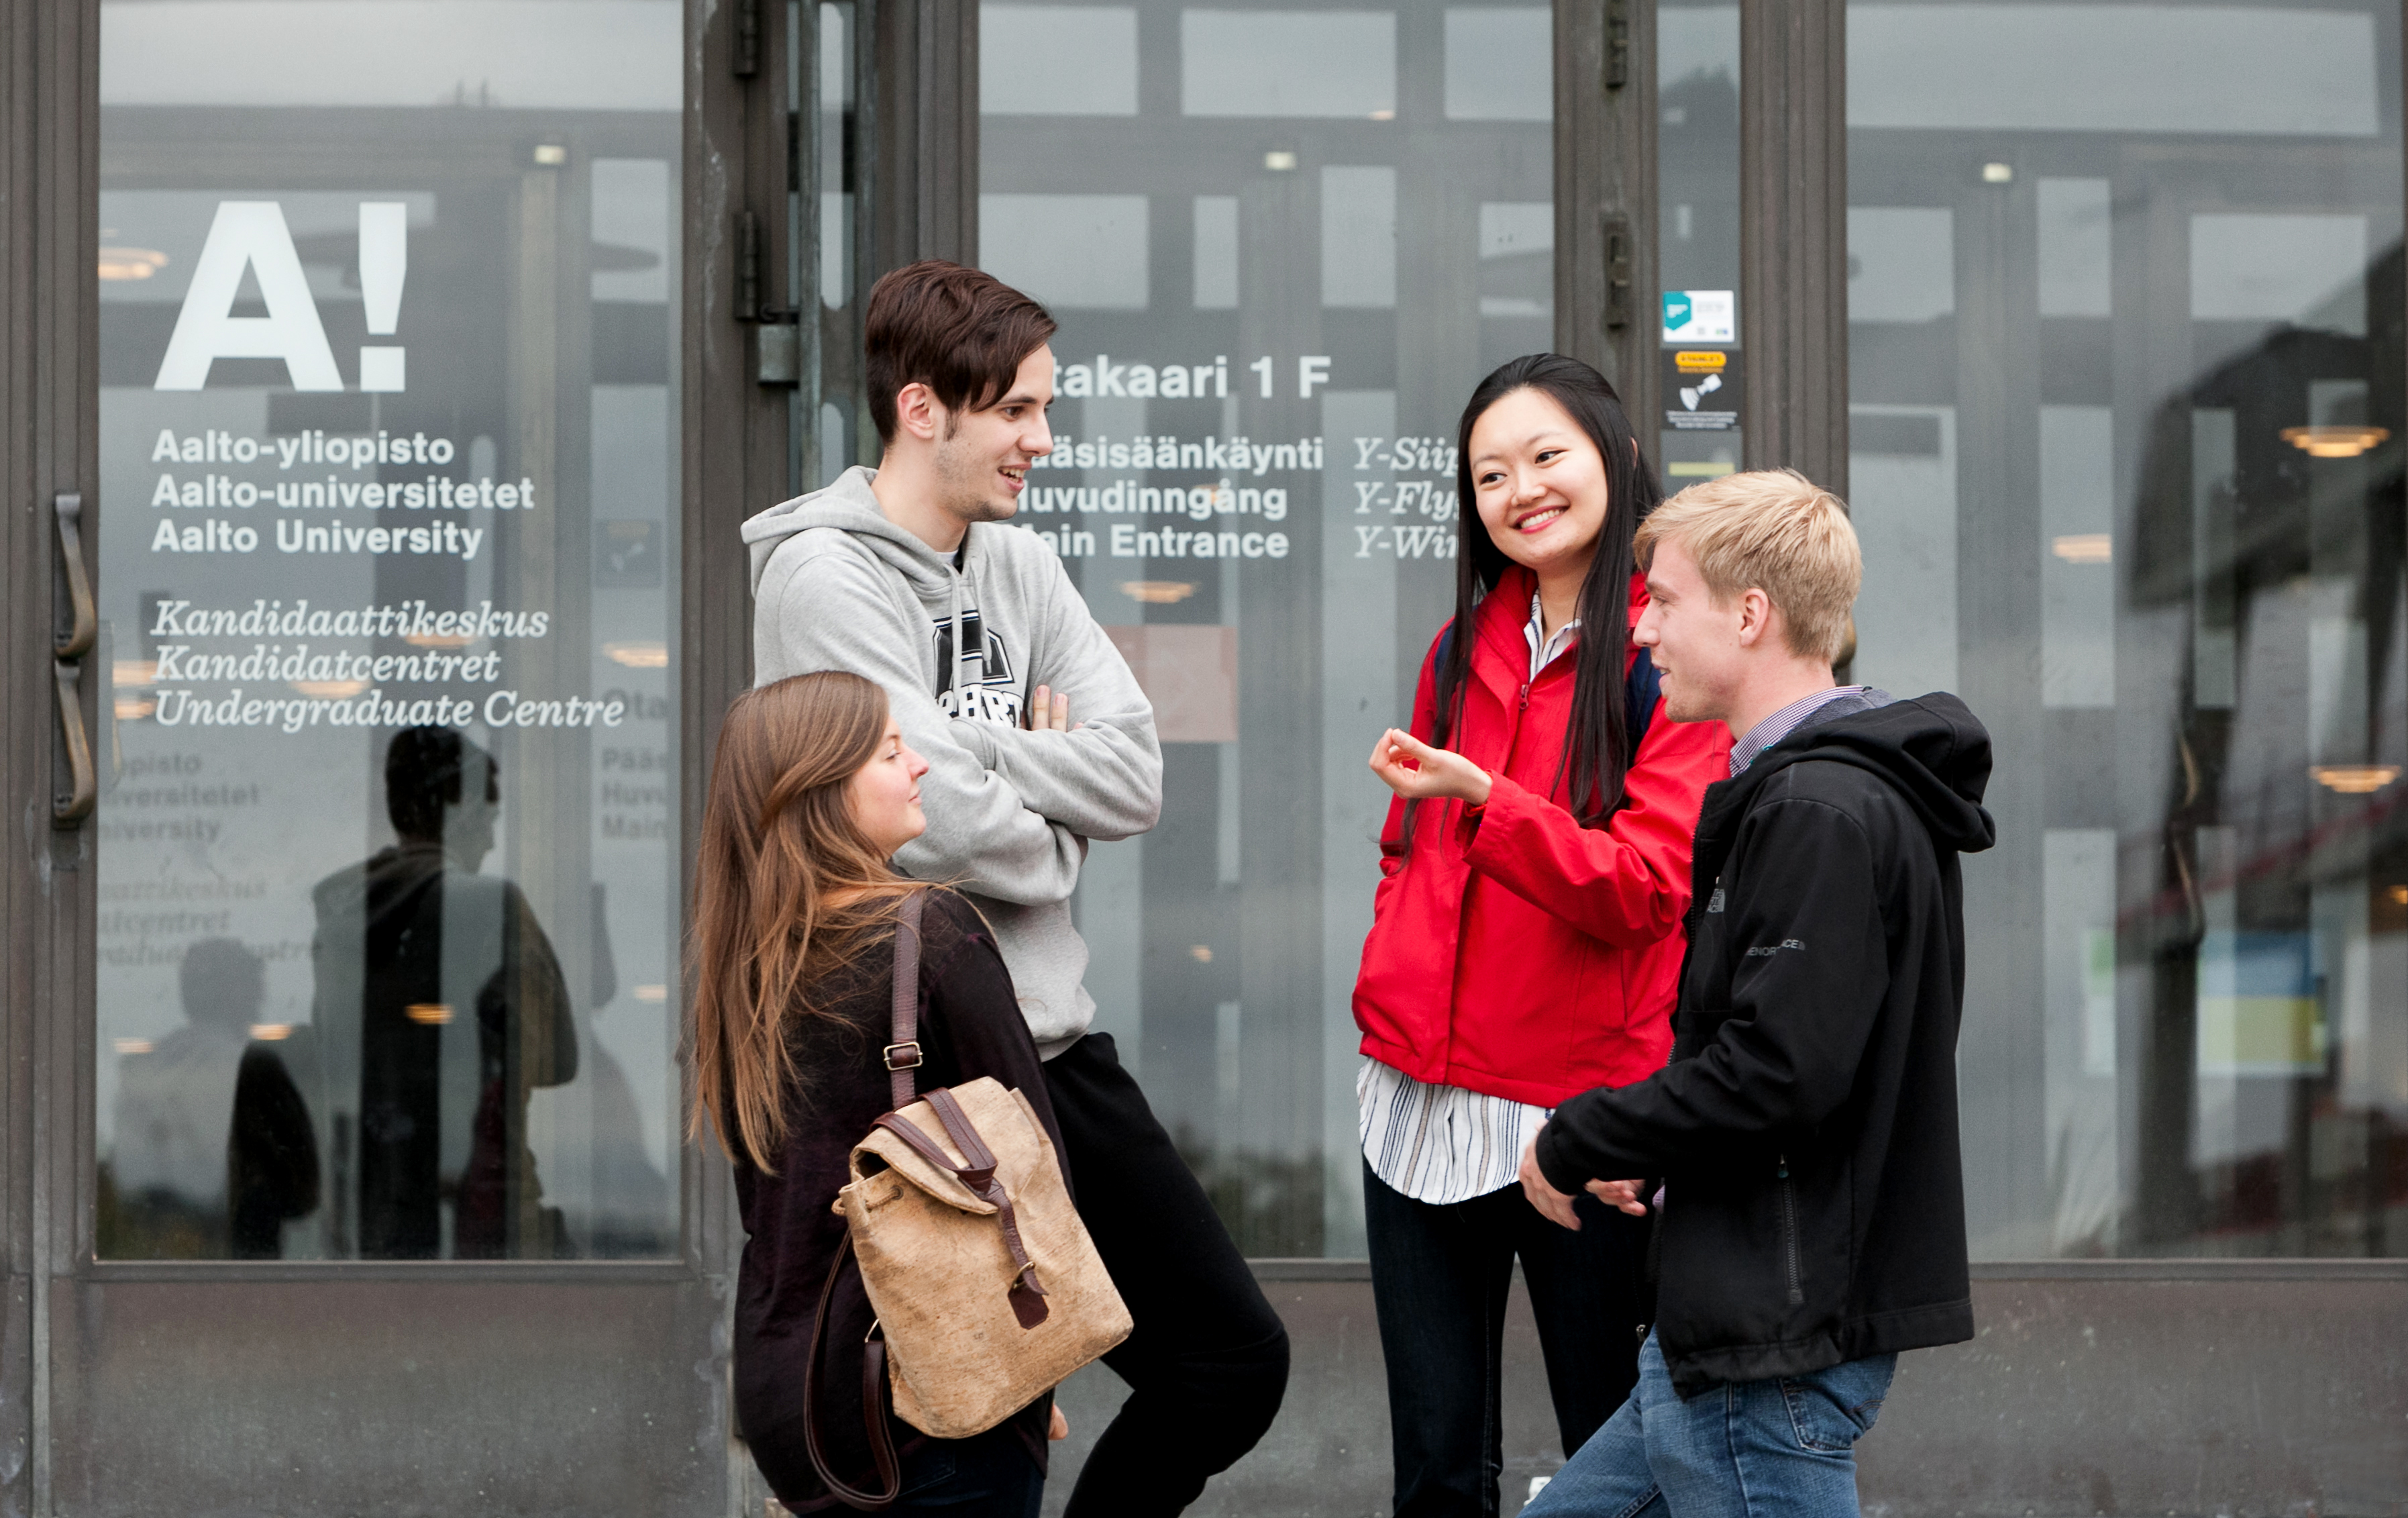 Students at Aalto University